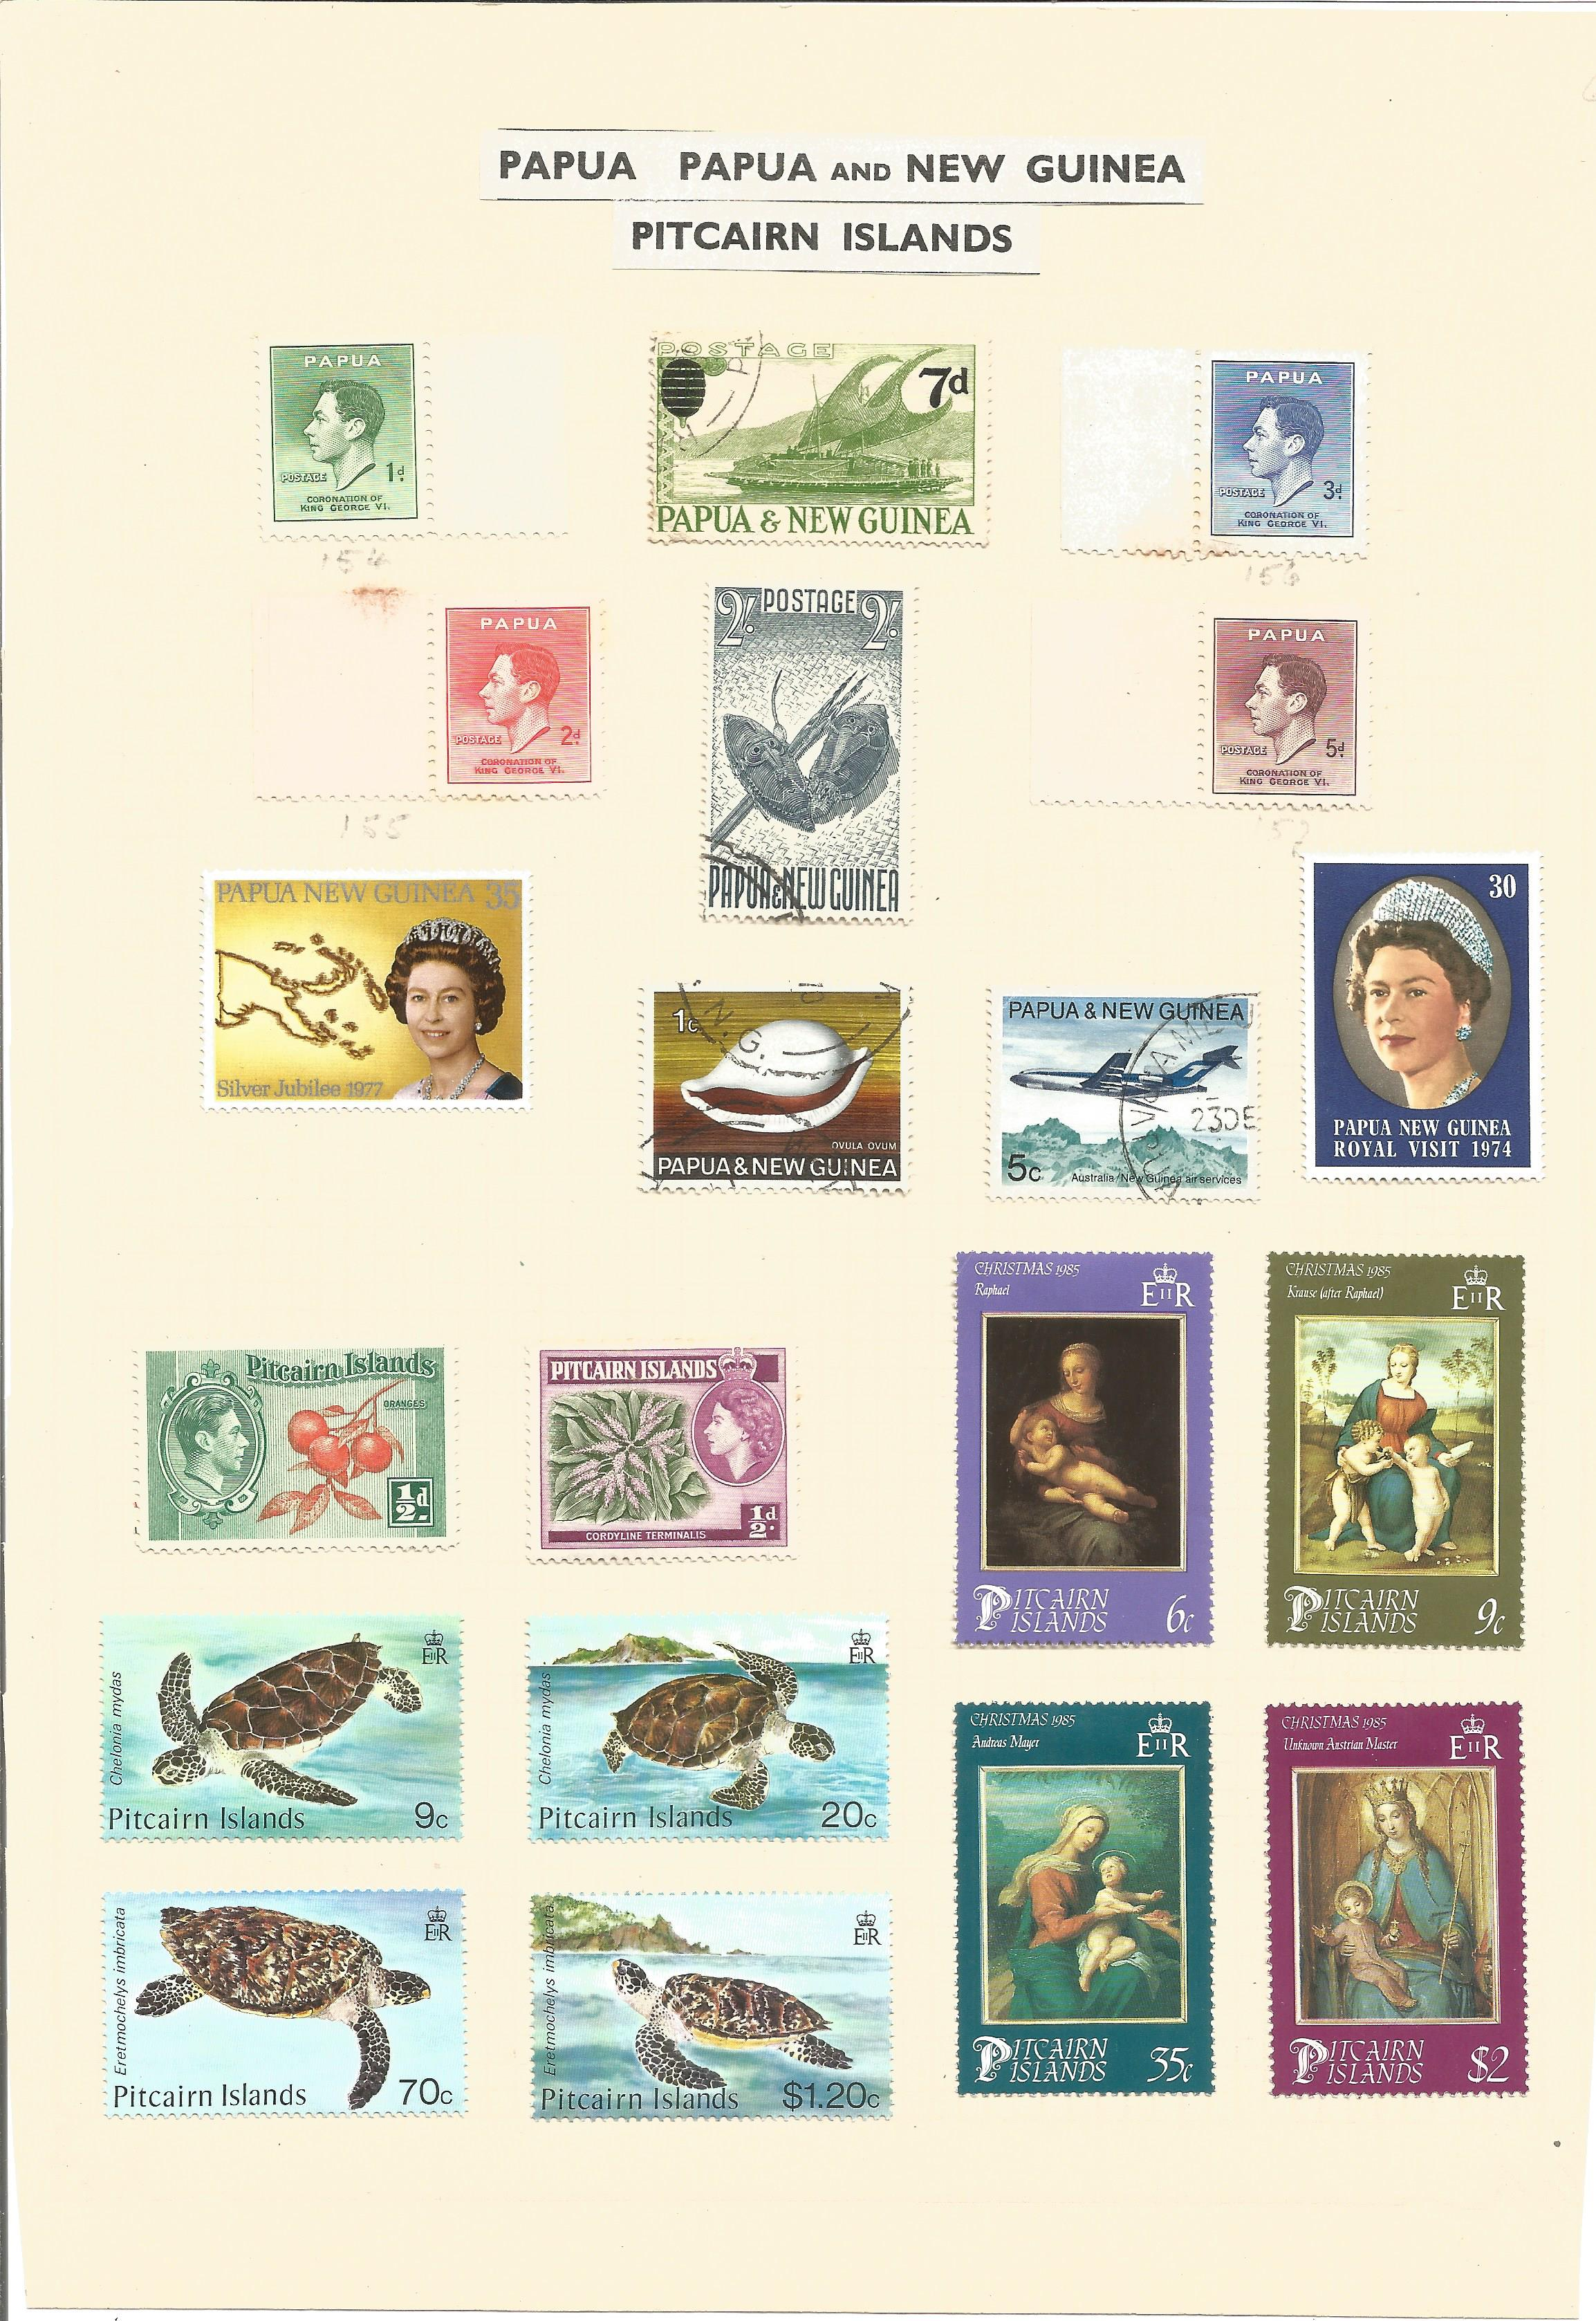 1 loose page of stamps from Papua and New Guinea Pitcairn Islands. 20 stamps. Good condition. We